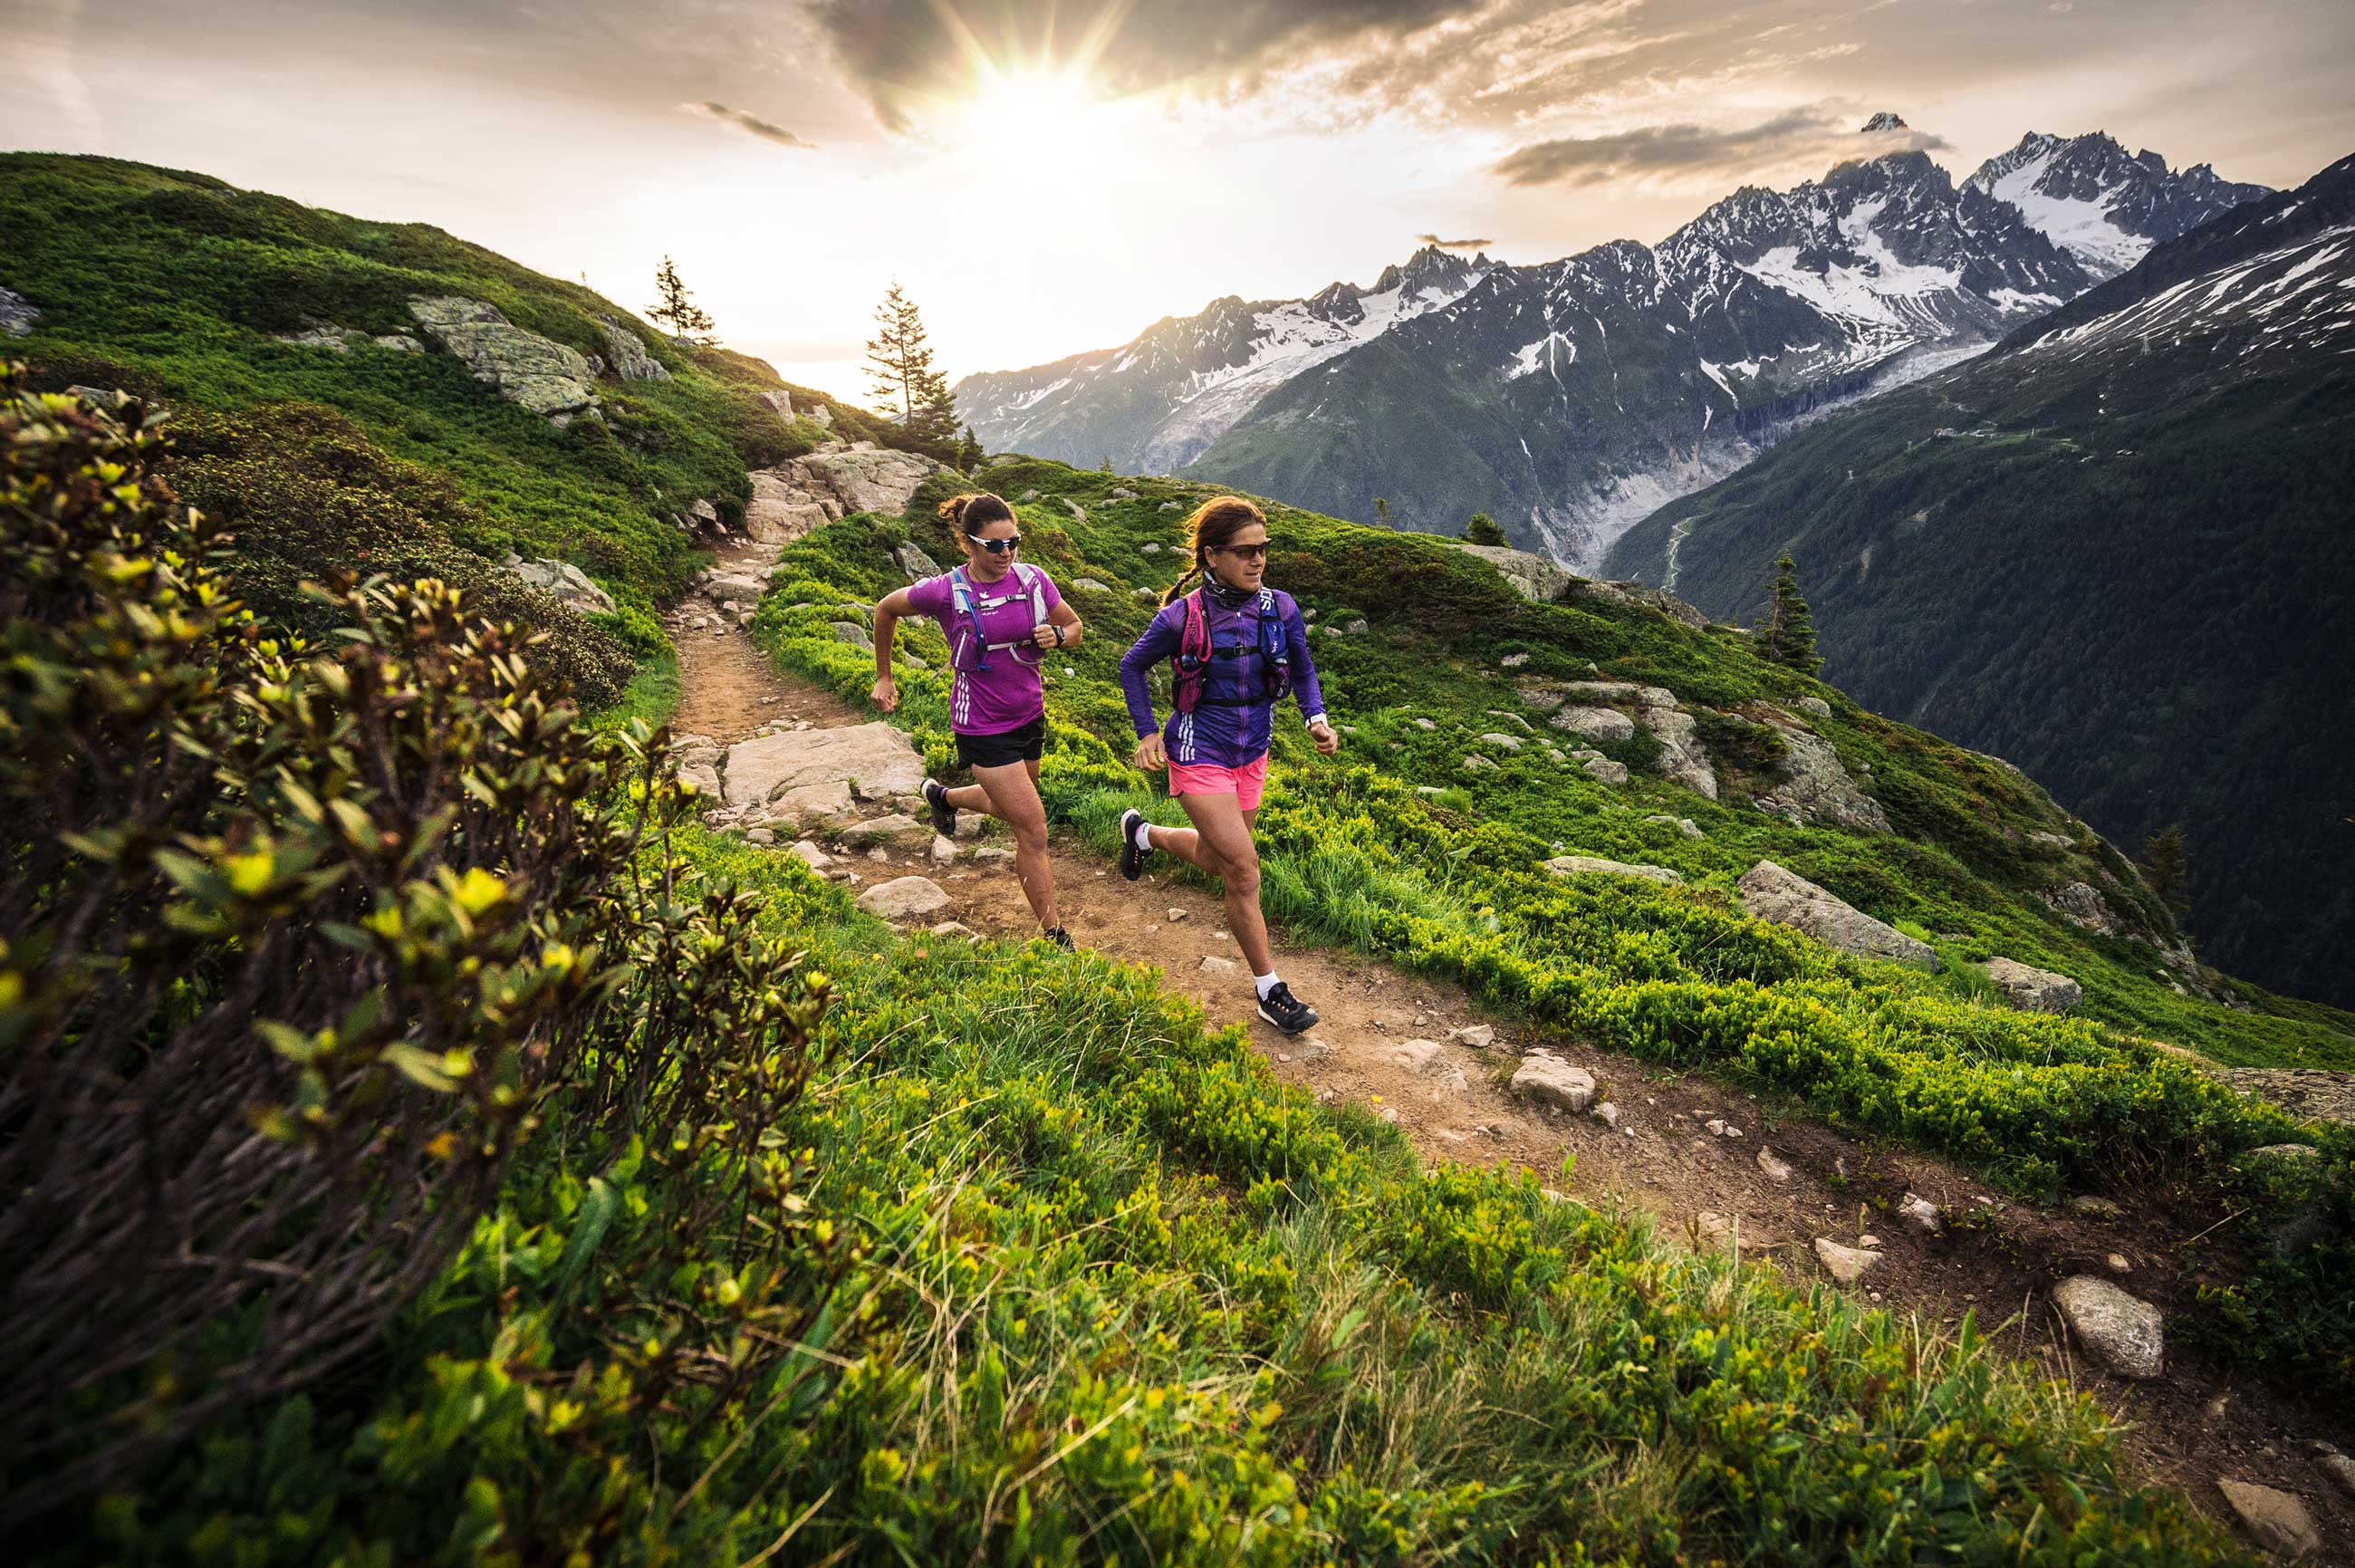 Trail running in mountains